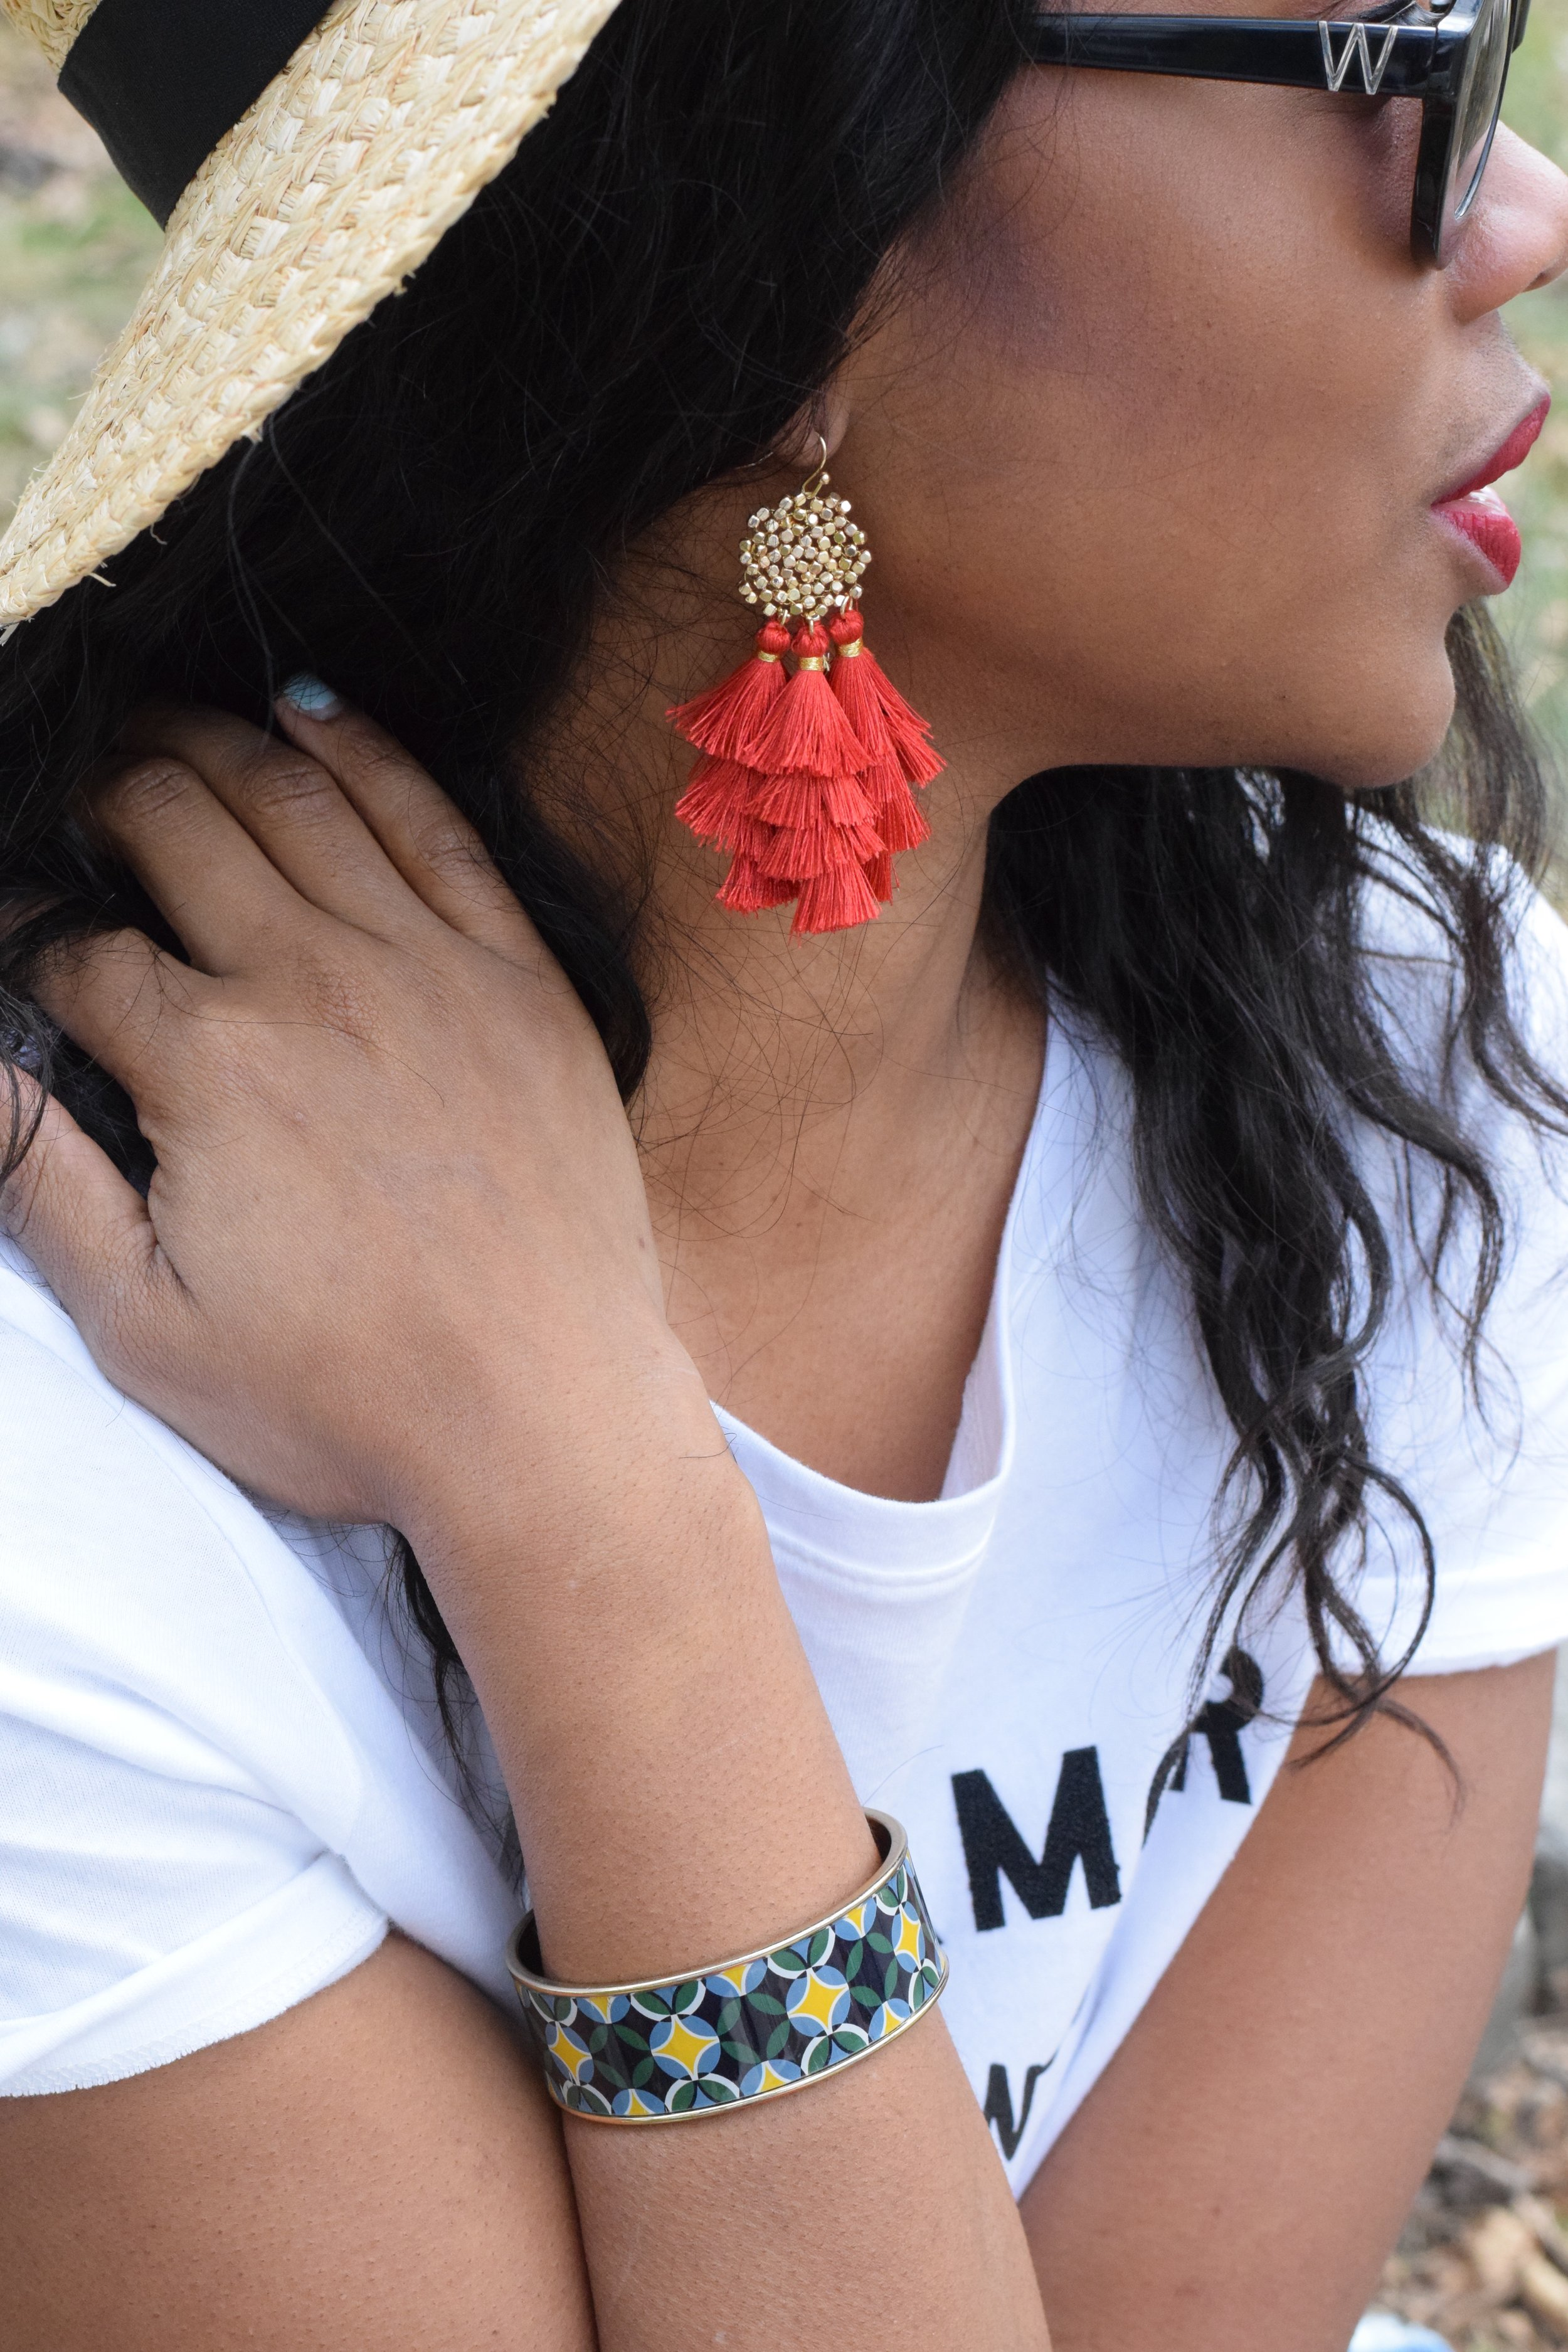 Earrings - vici collection (@vicidolls); sunnies - wildfox (@wildfox)